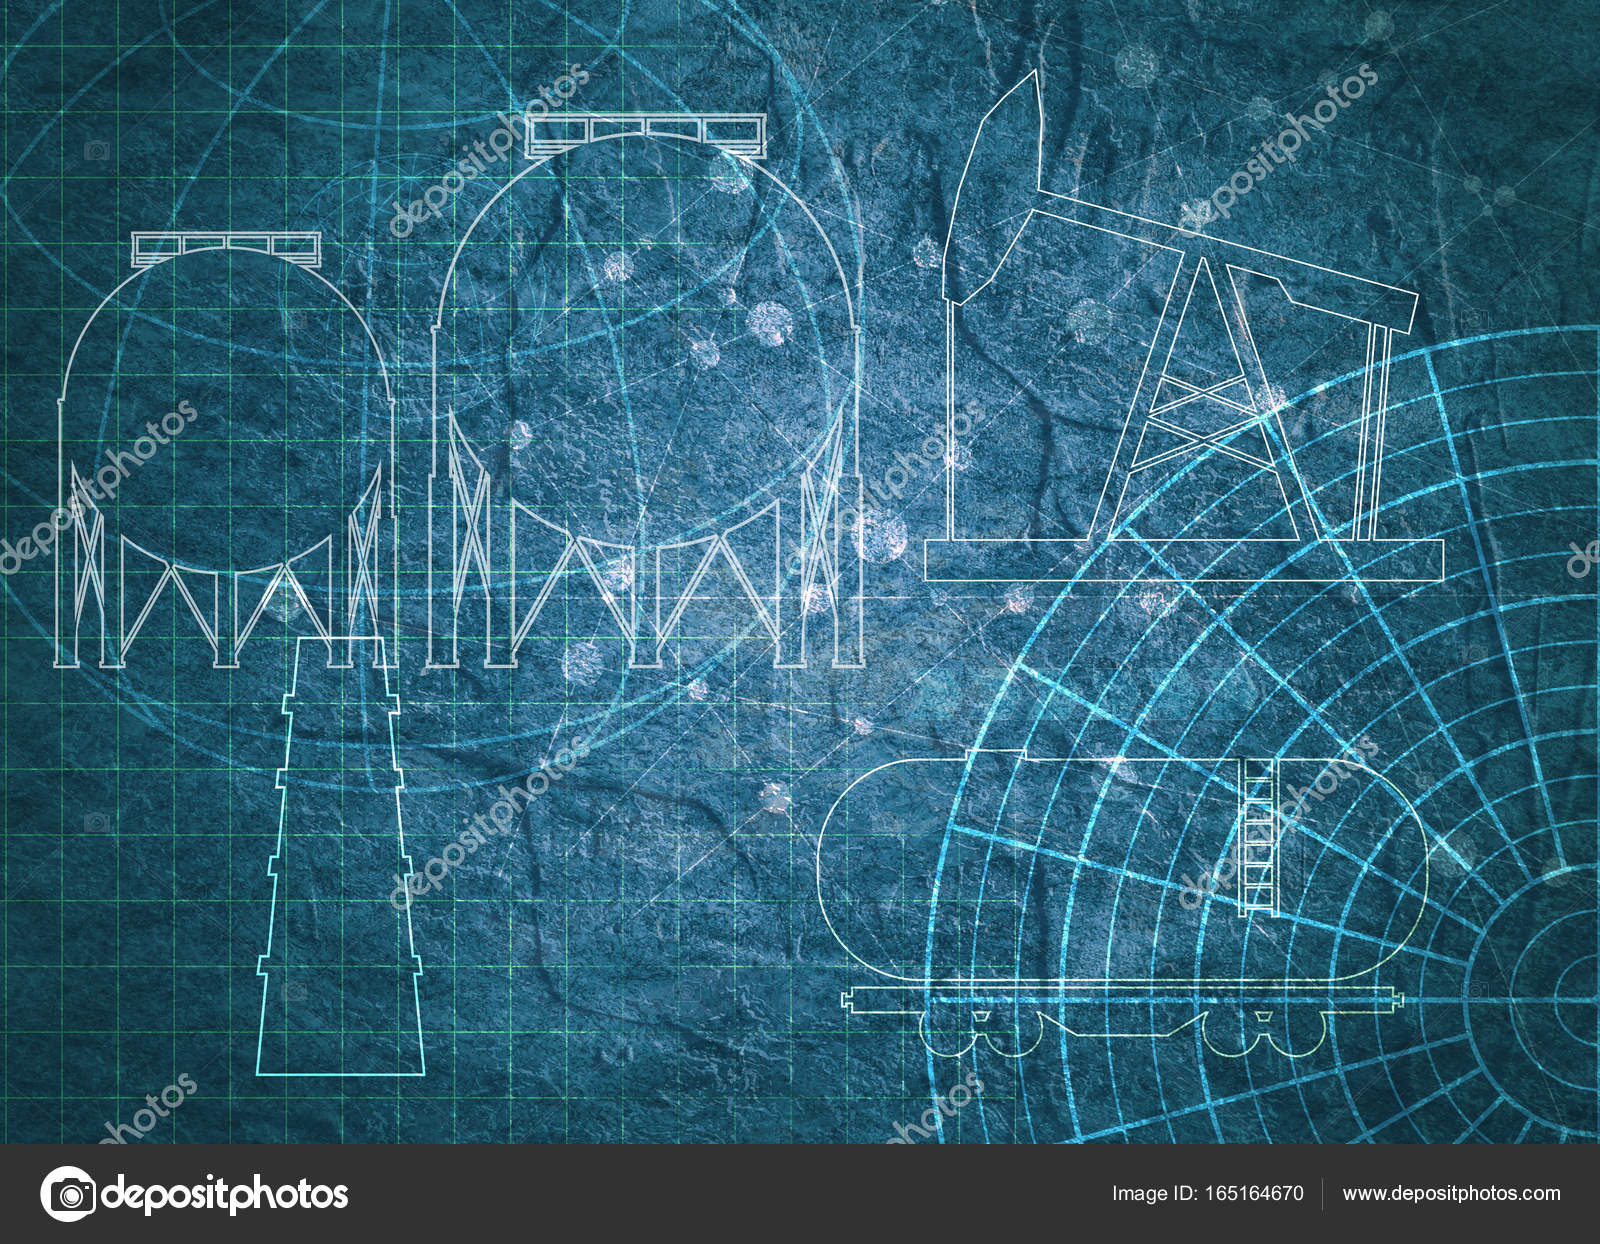 Technical blueprint background stock photo jegasra 165164670 old blueprint background texture technical backdrop paper outline silhouettes on concrete textured backdrop photo by jegasra malvernweather Gallery